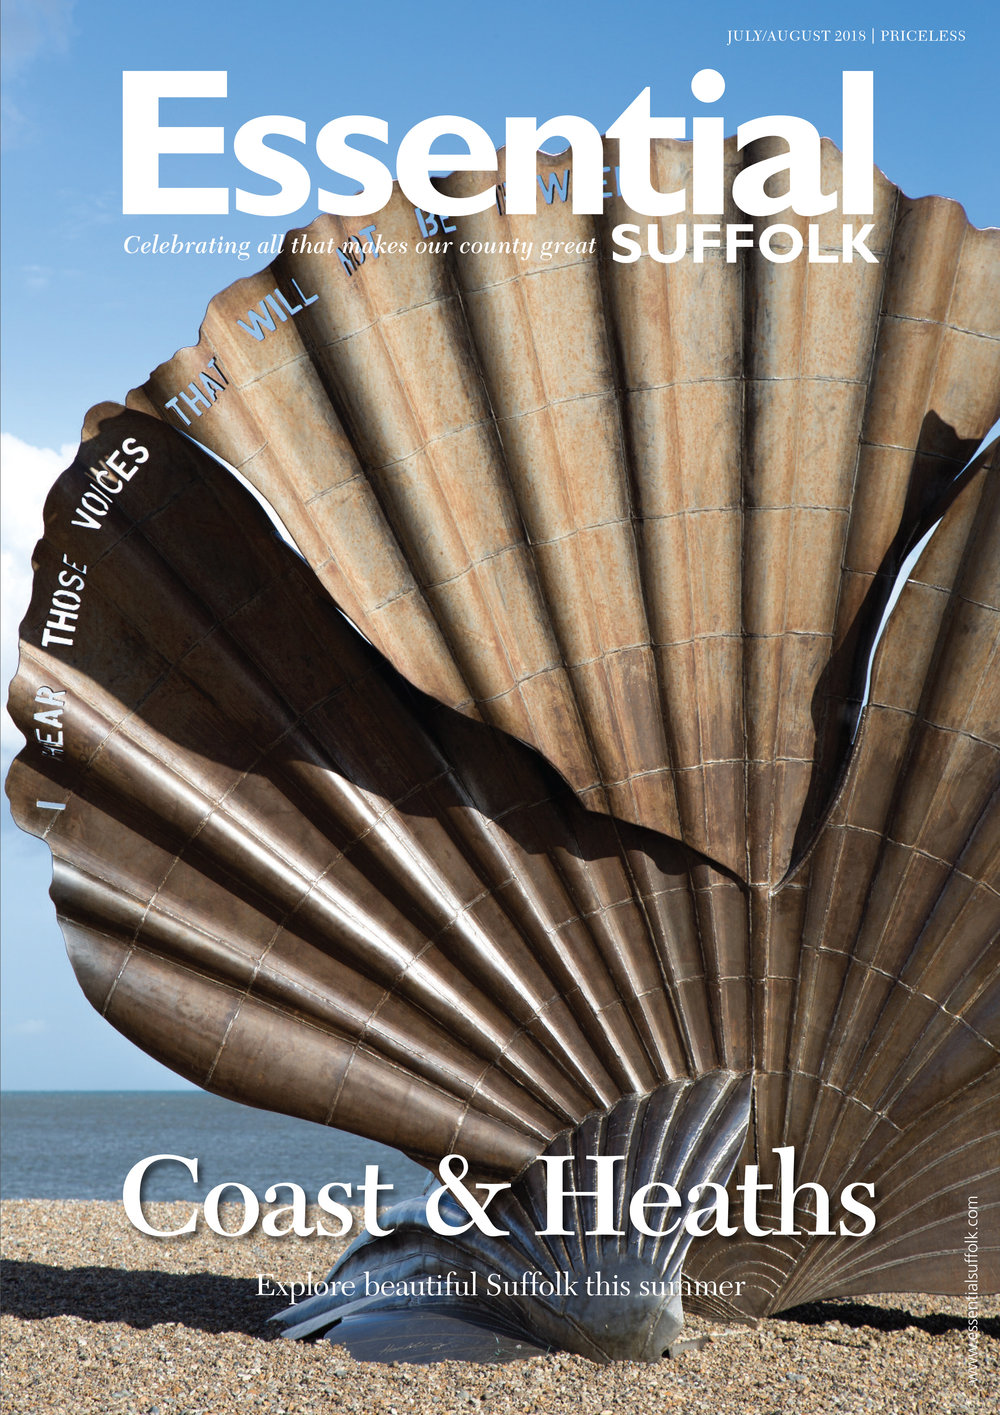 Essential Suffolk July August 2018